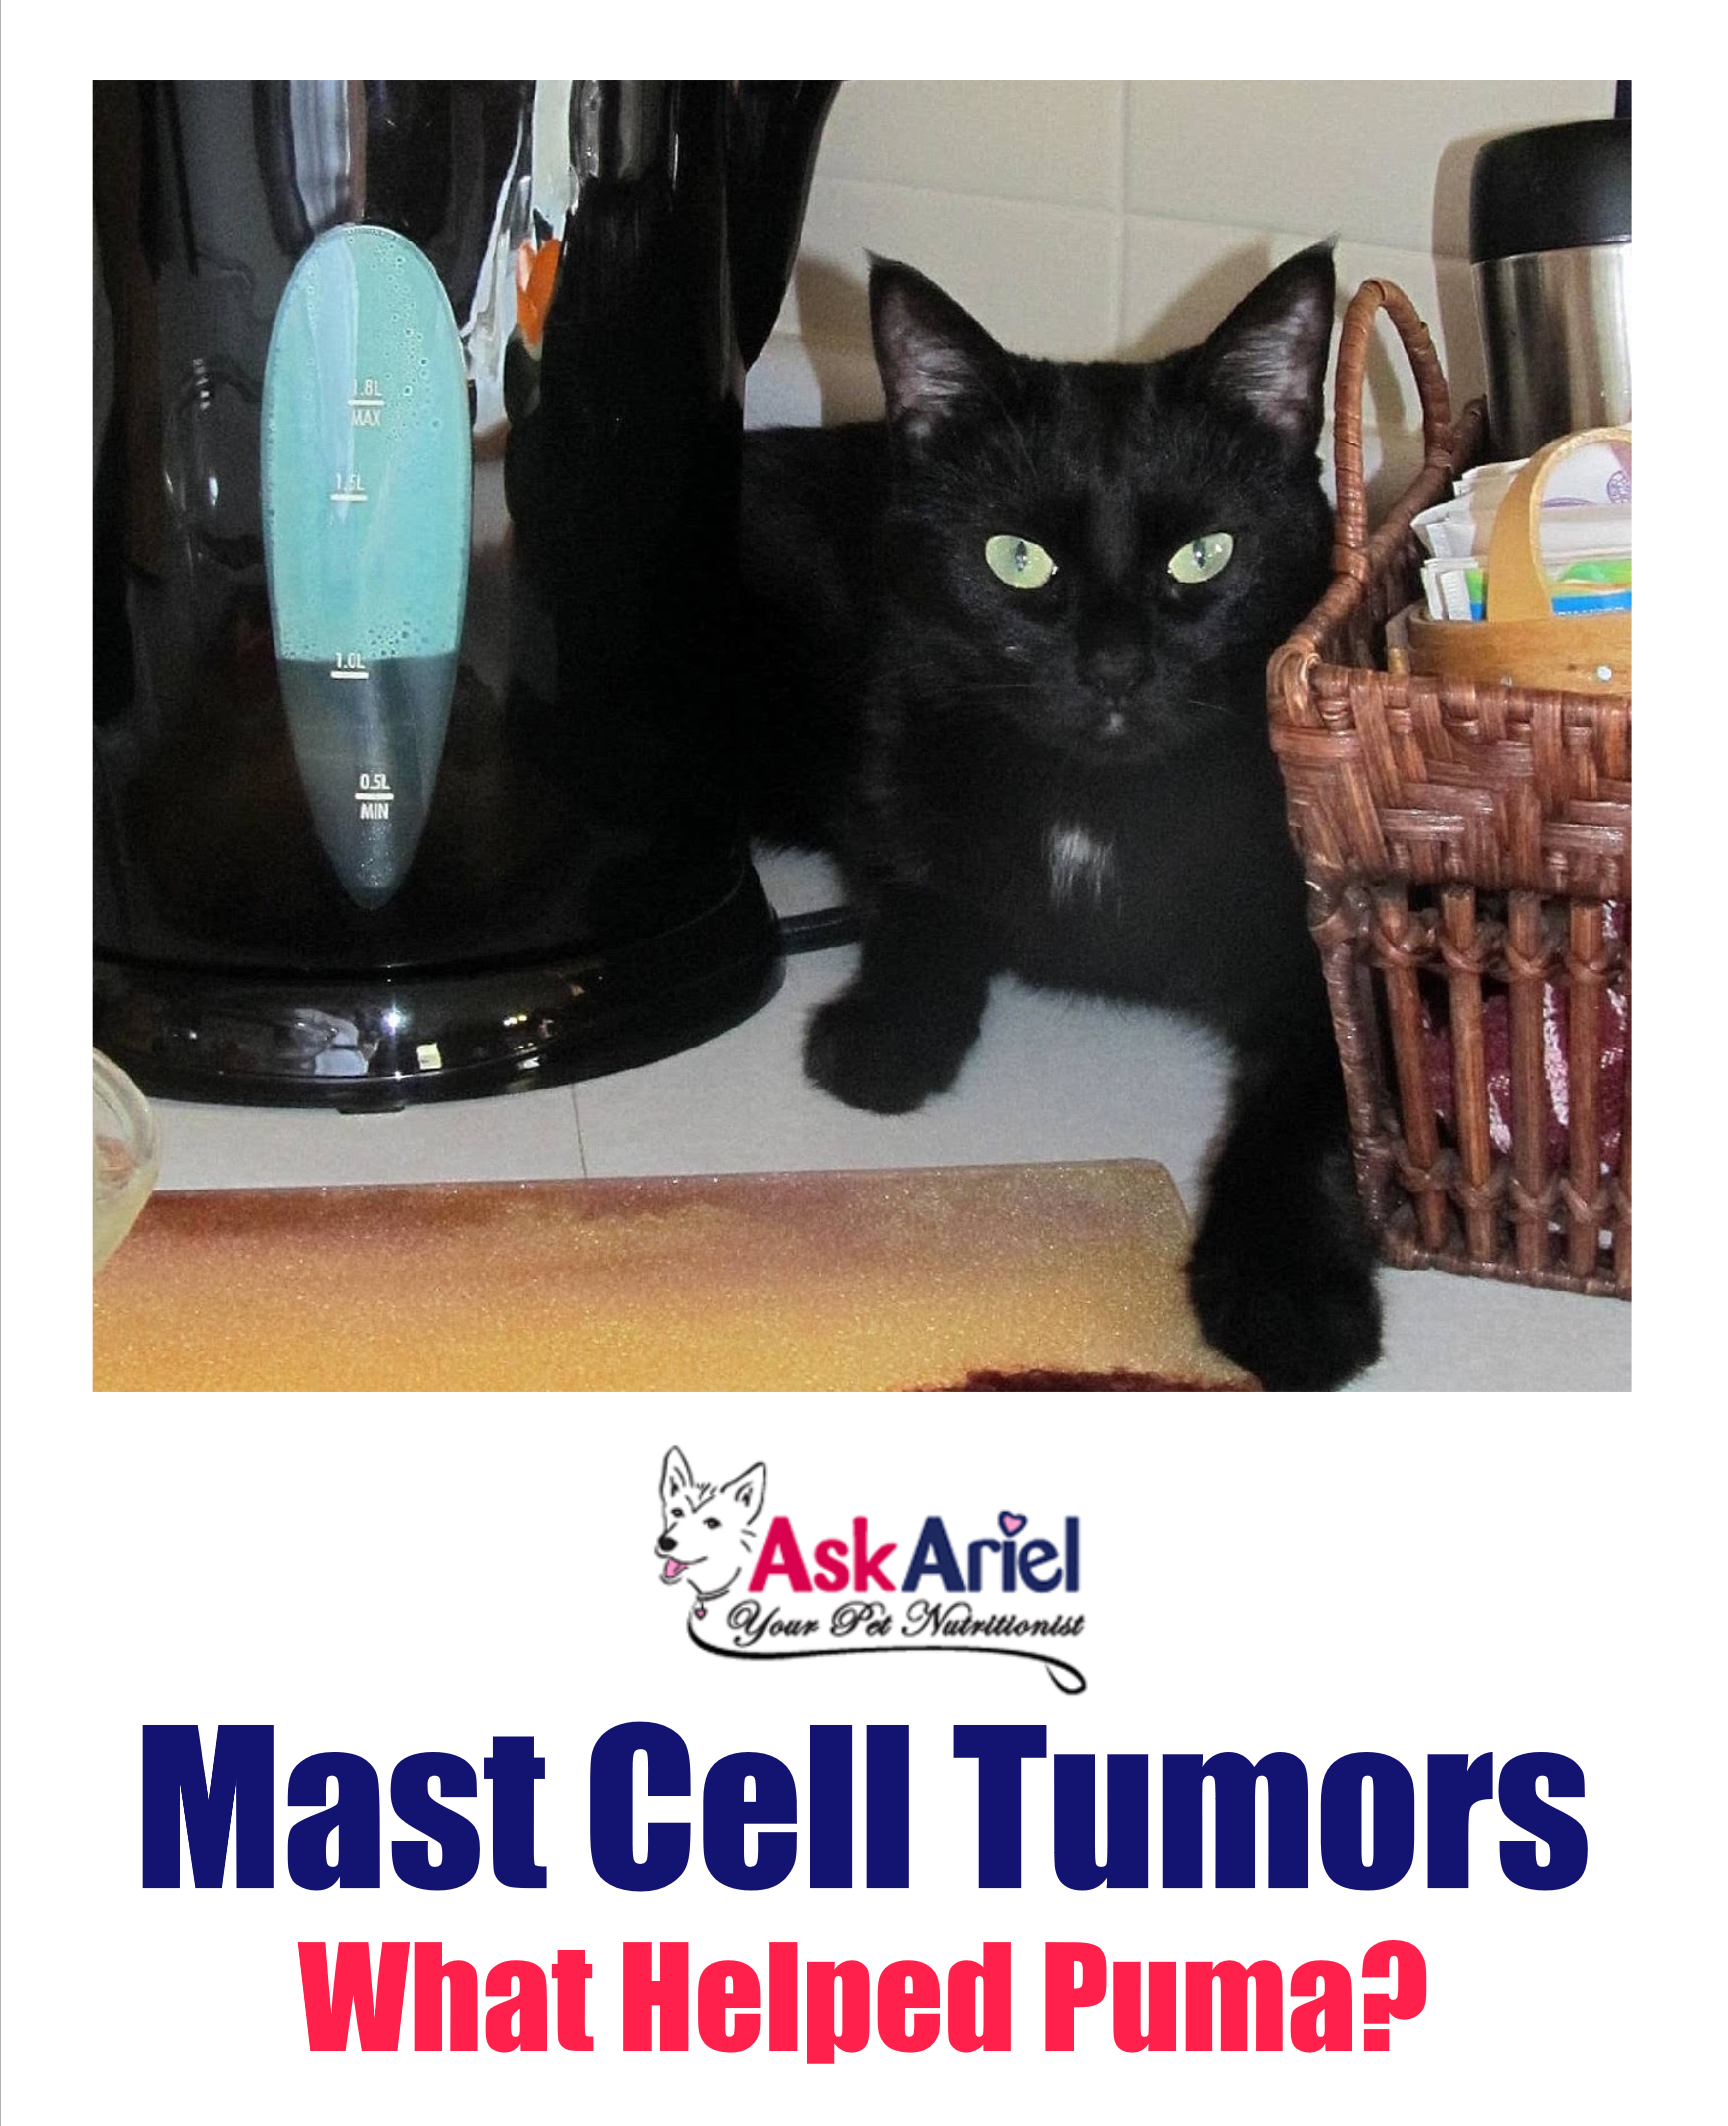 Puma had a malignant mast cell tumor in her small